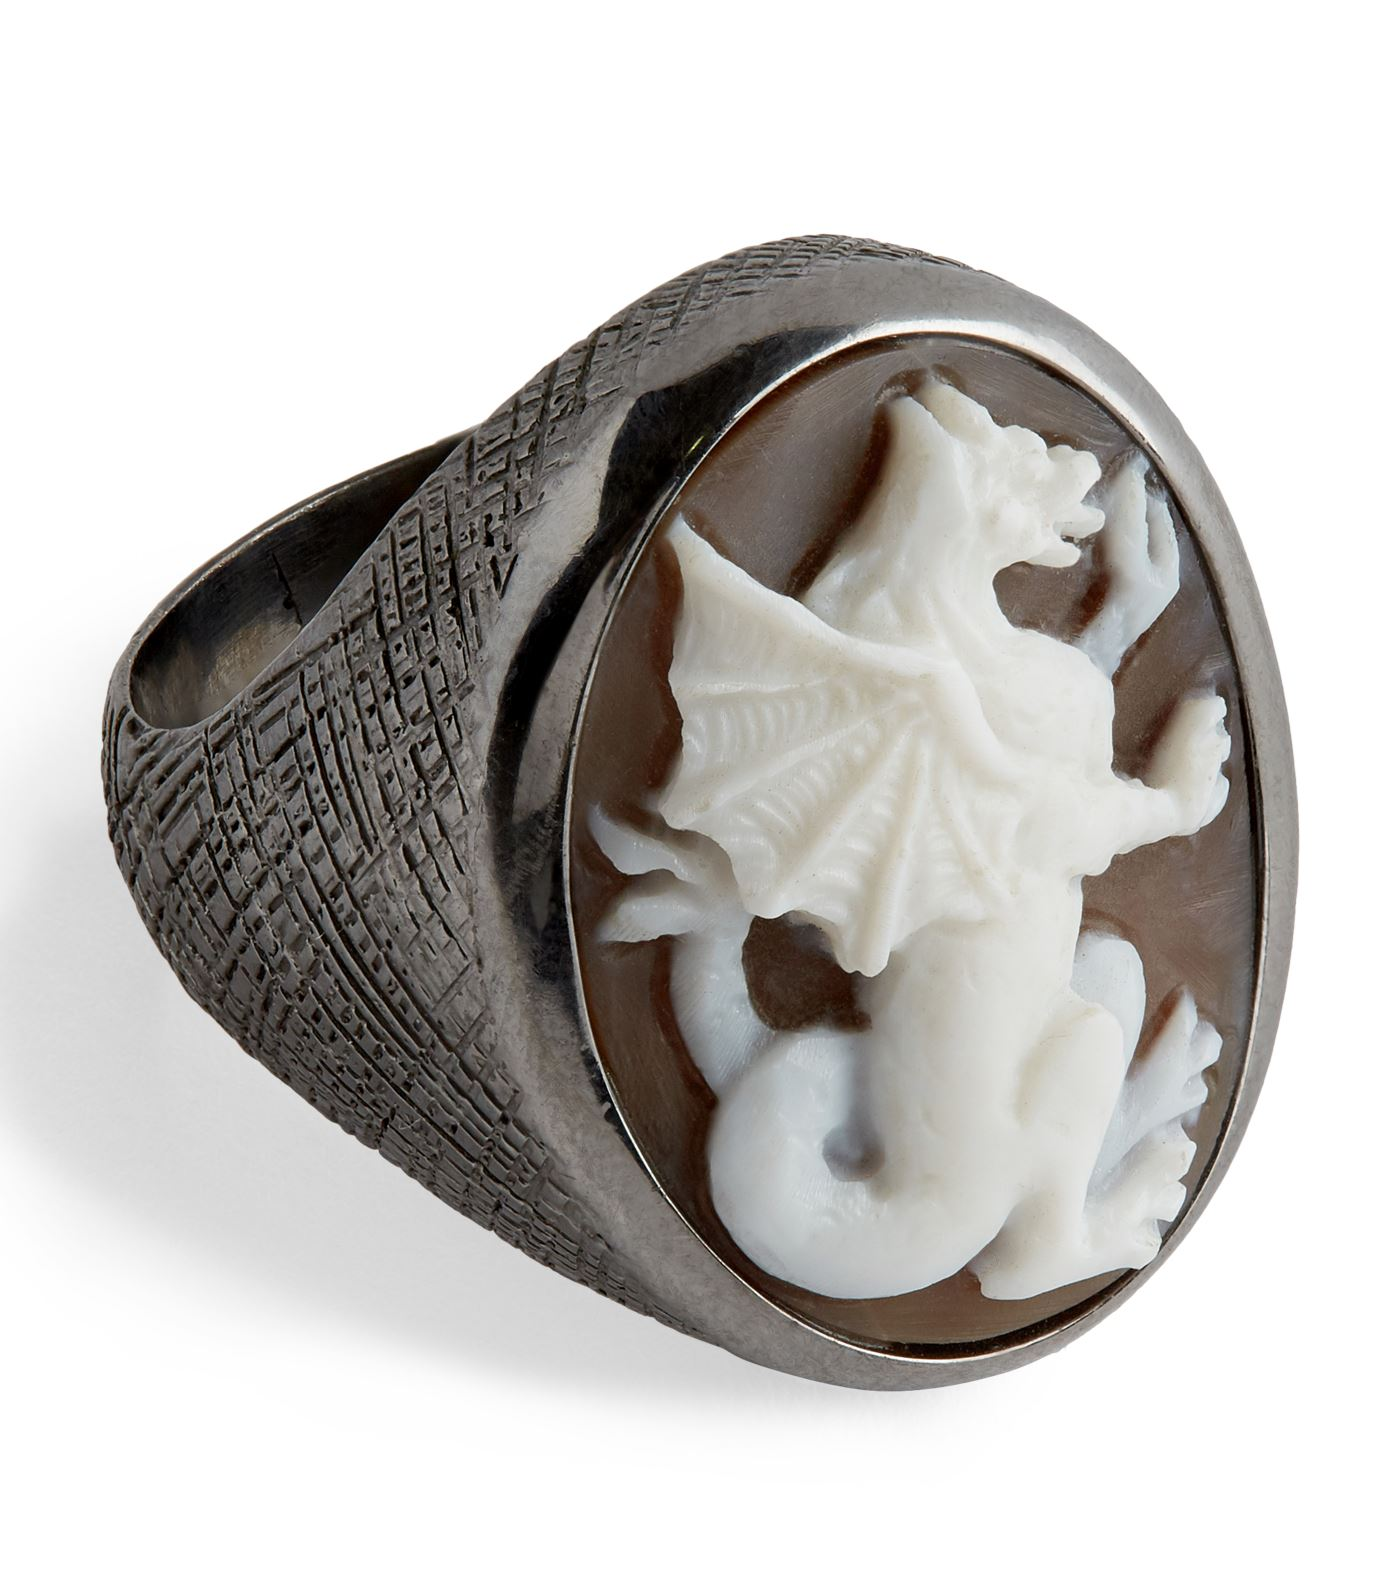 Amedeo - Learning the art of carving cameo at the age of 16, Amedeo's ideas are now elevated through